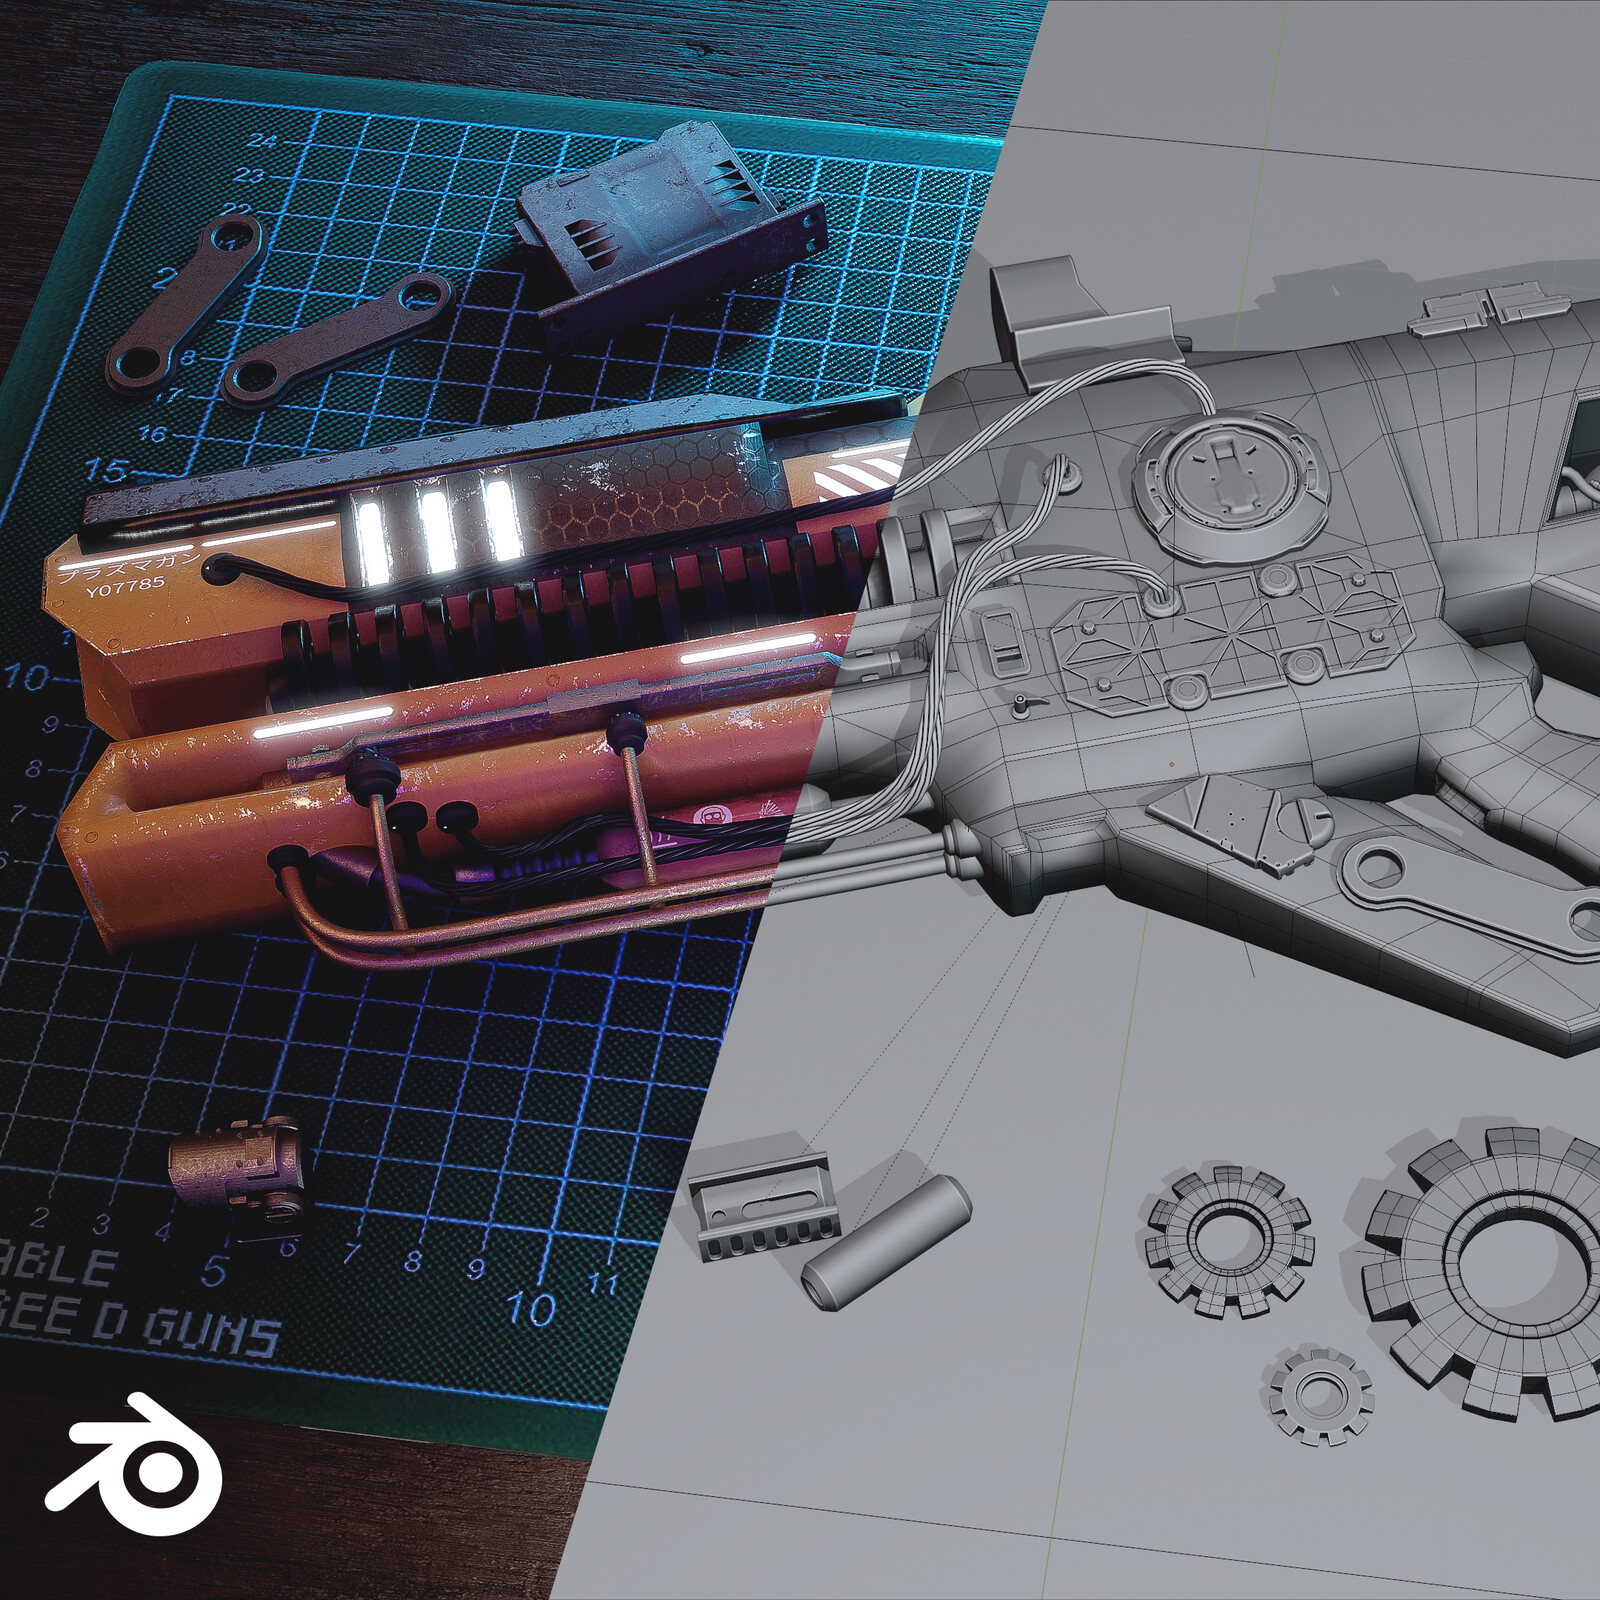 Work Bench - Customized weapon